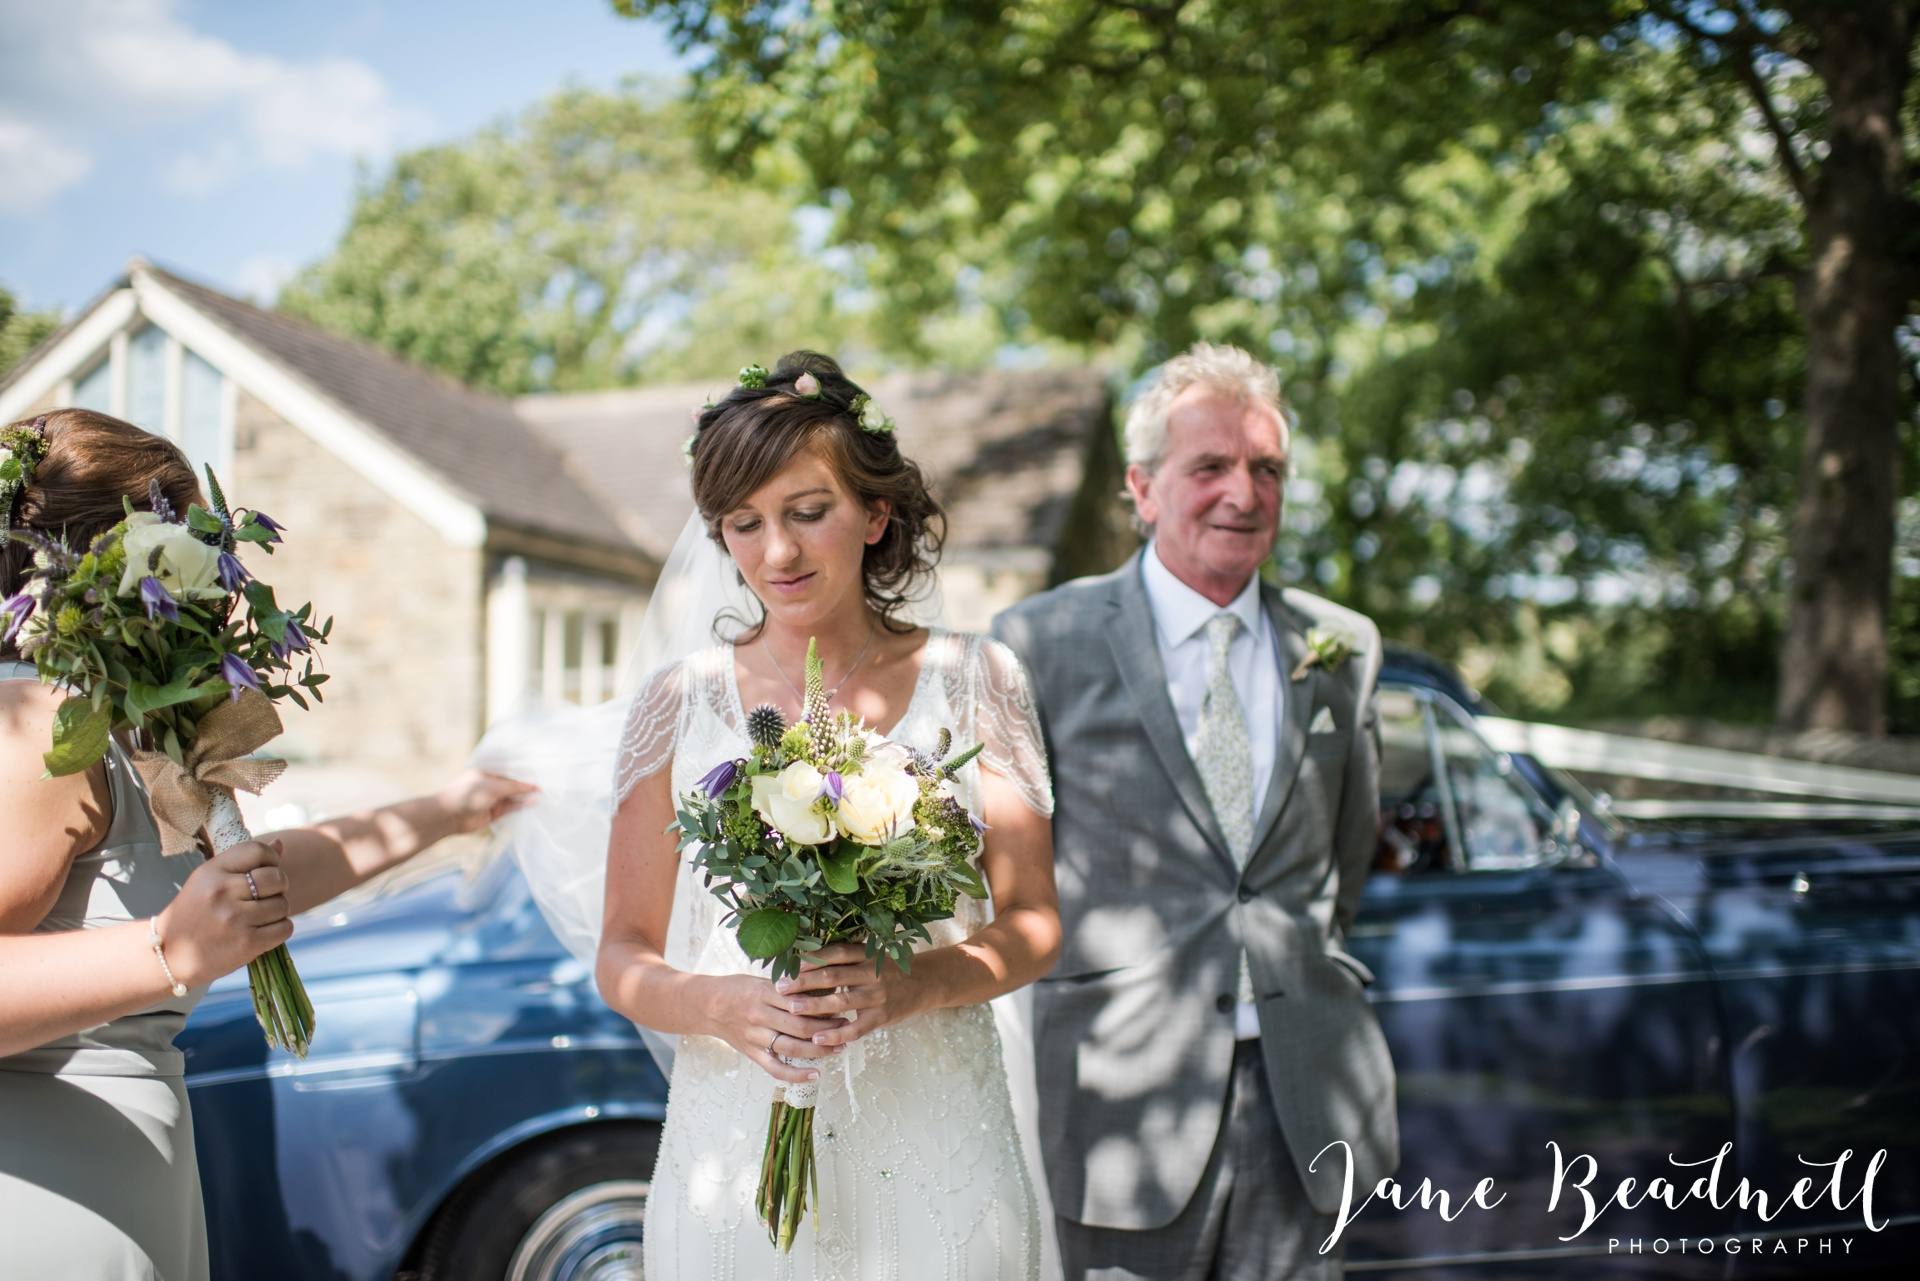 Jane Beadnell fine art wedding photographer Leeds_0033